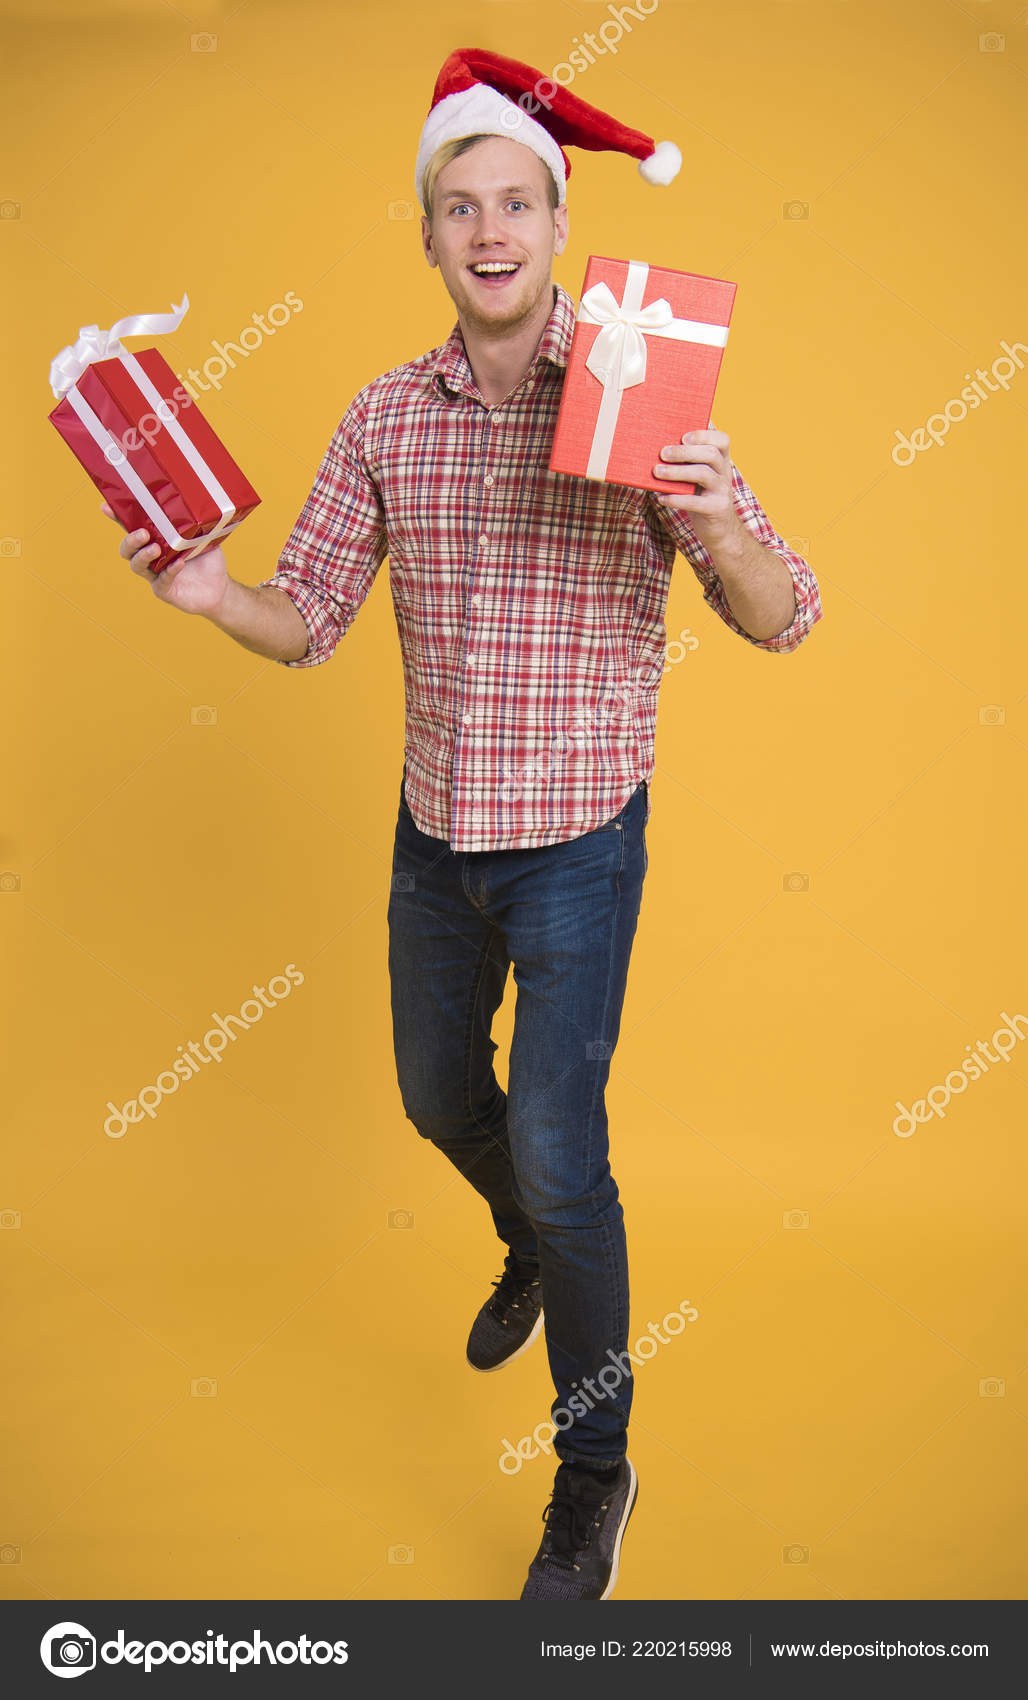 5b9d73a0e5389 Handsome man wear santa hat holding a lot of gift box on yellow background.  christmas and happy new year concept.